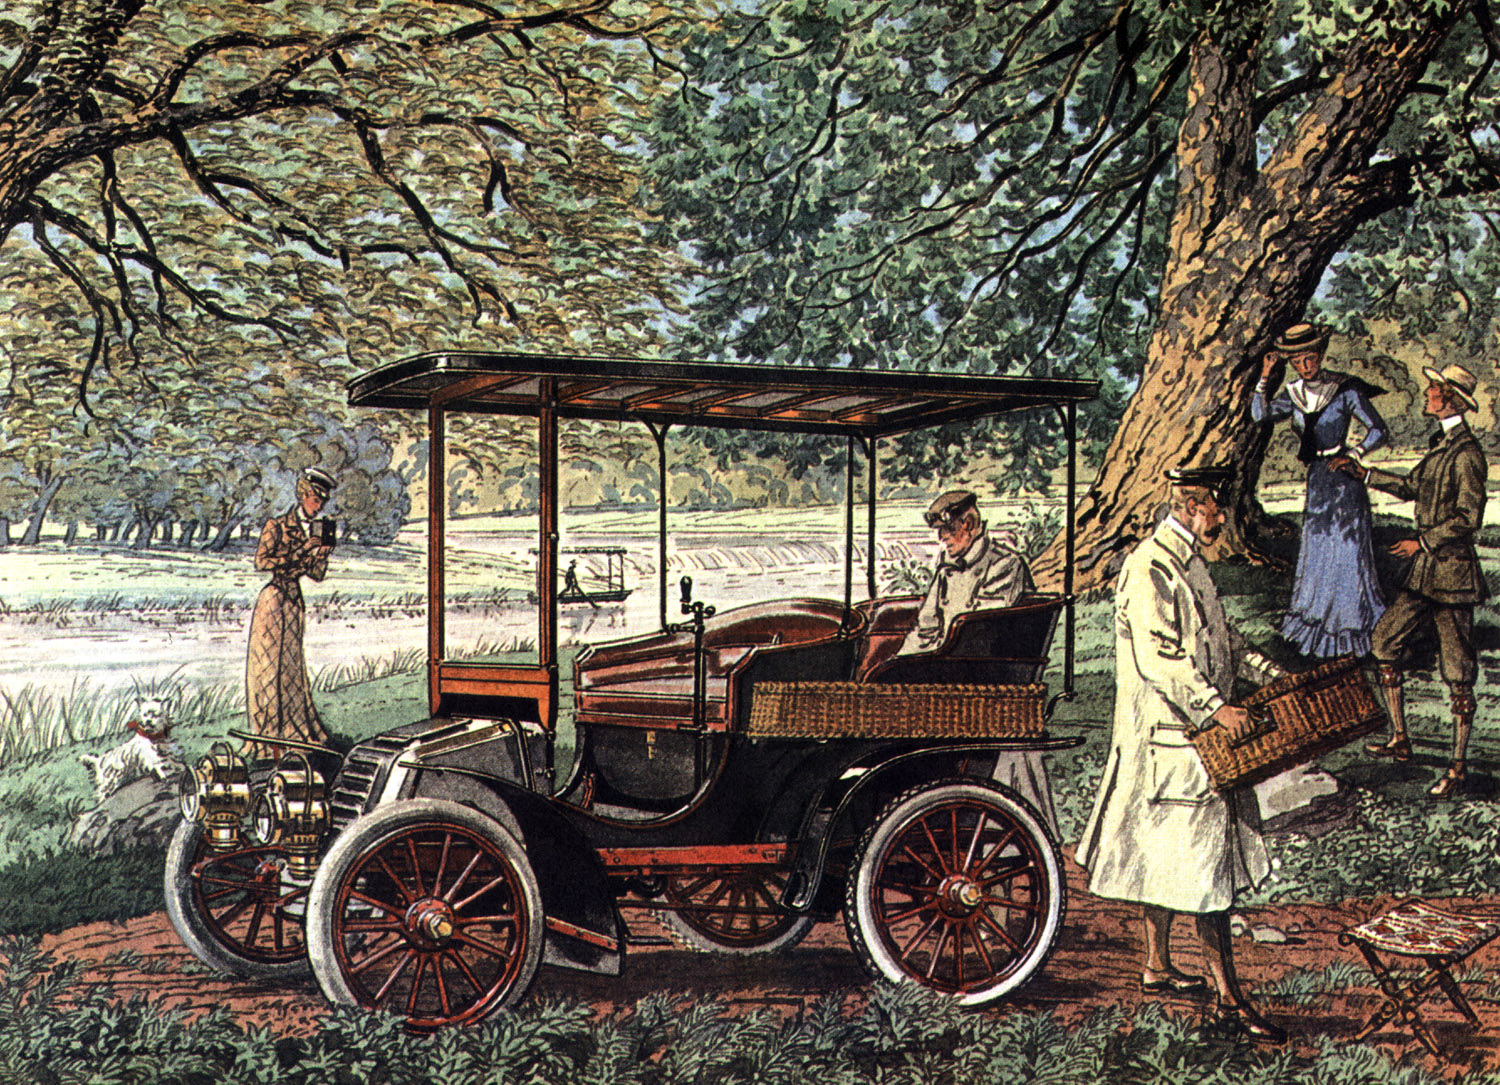 1903 Autocar - Illustrated by Leslie Saalburg